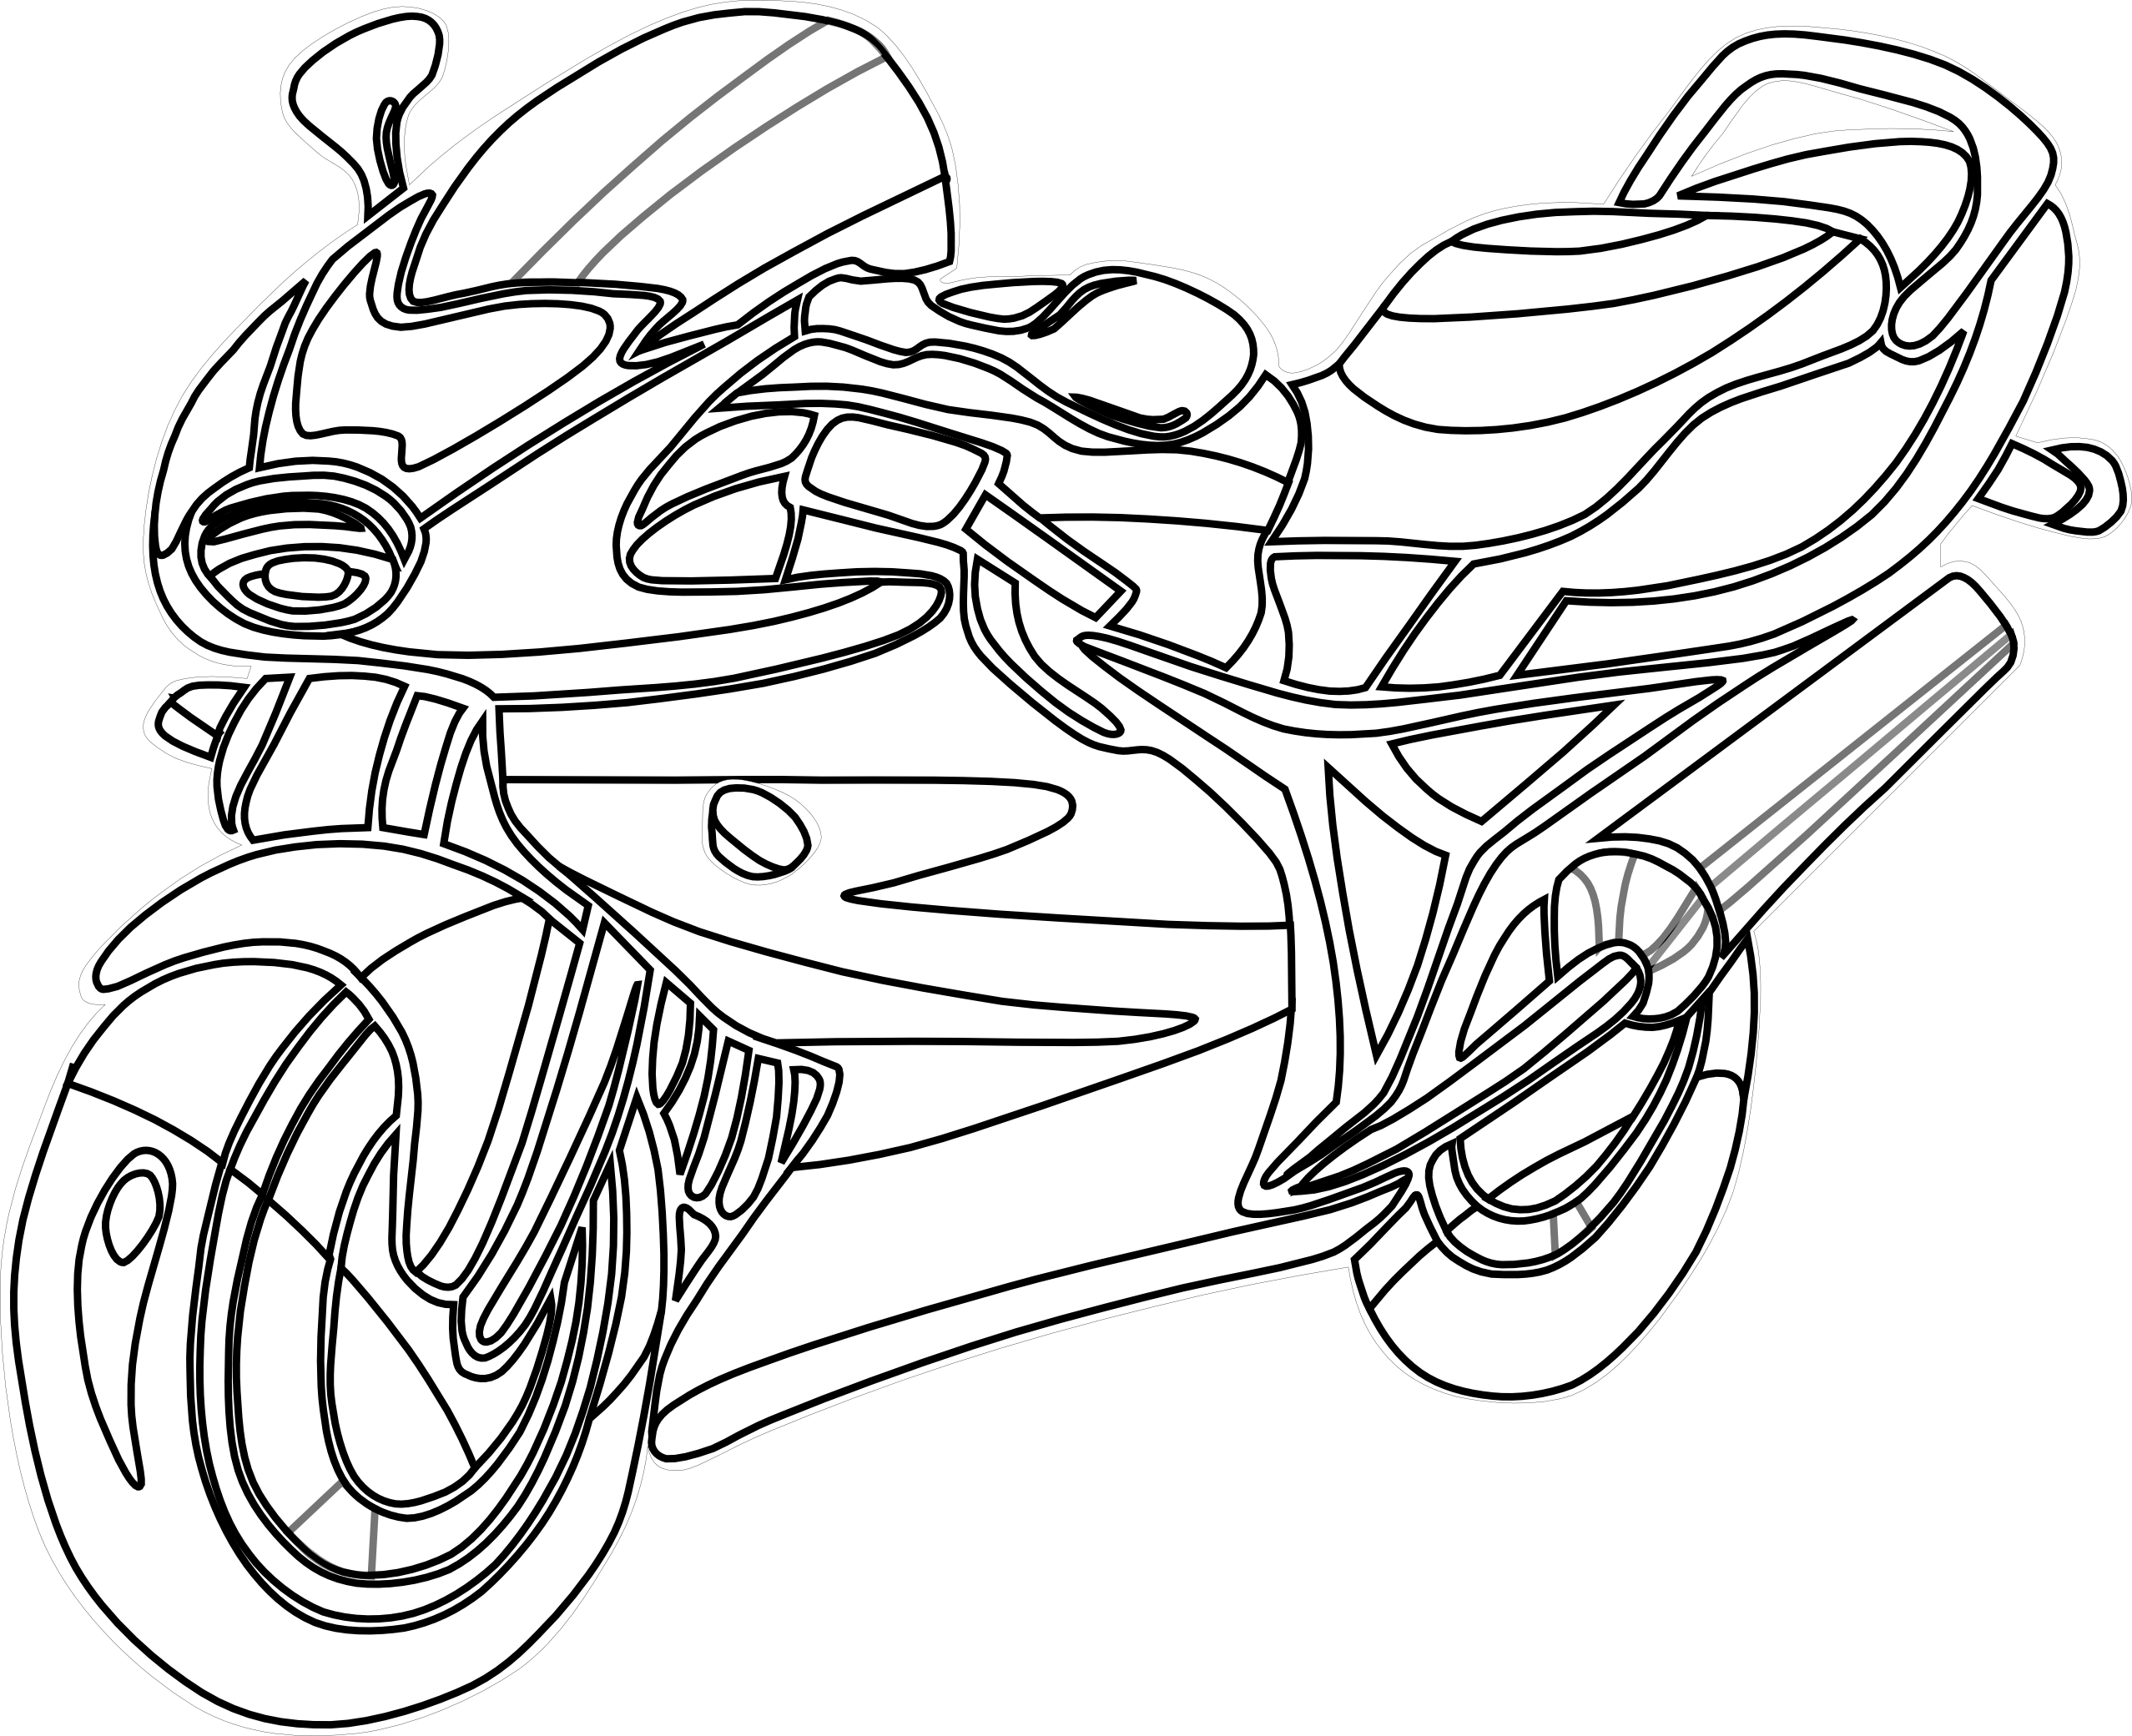 Motorcycle Clipart Black And White Clipart Panda Free.